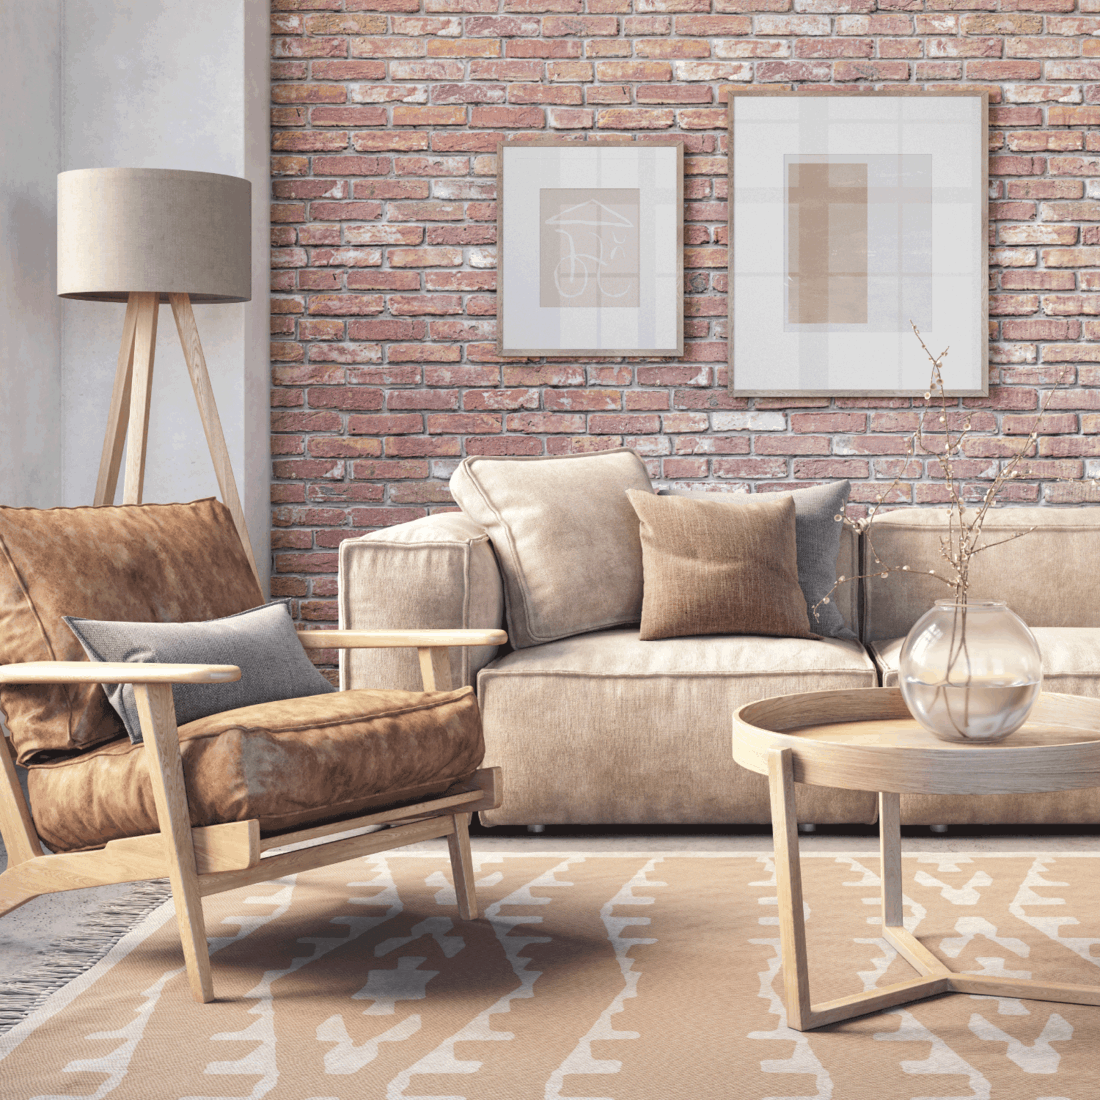 Bohemian living room interior with beige colored furniture and wooden elements and brick wall